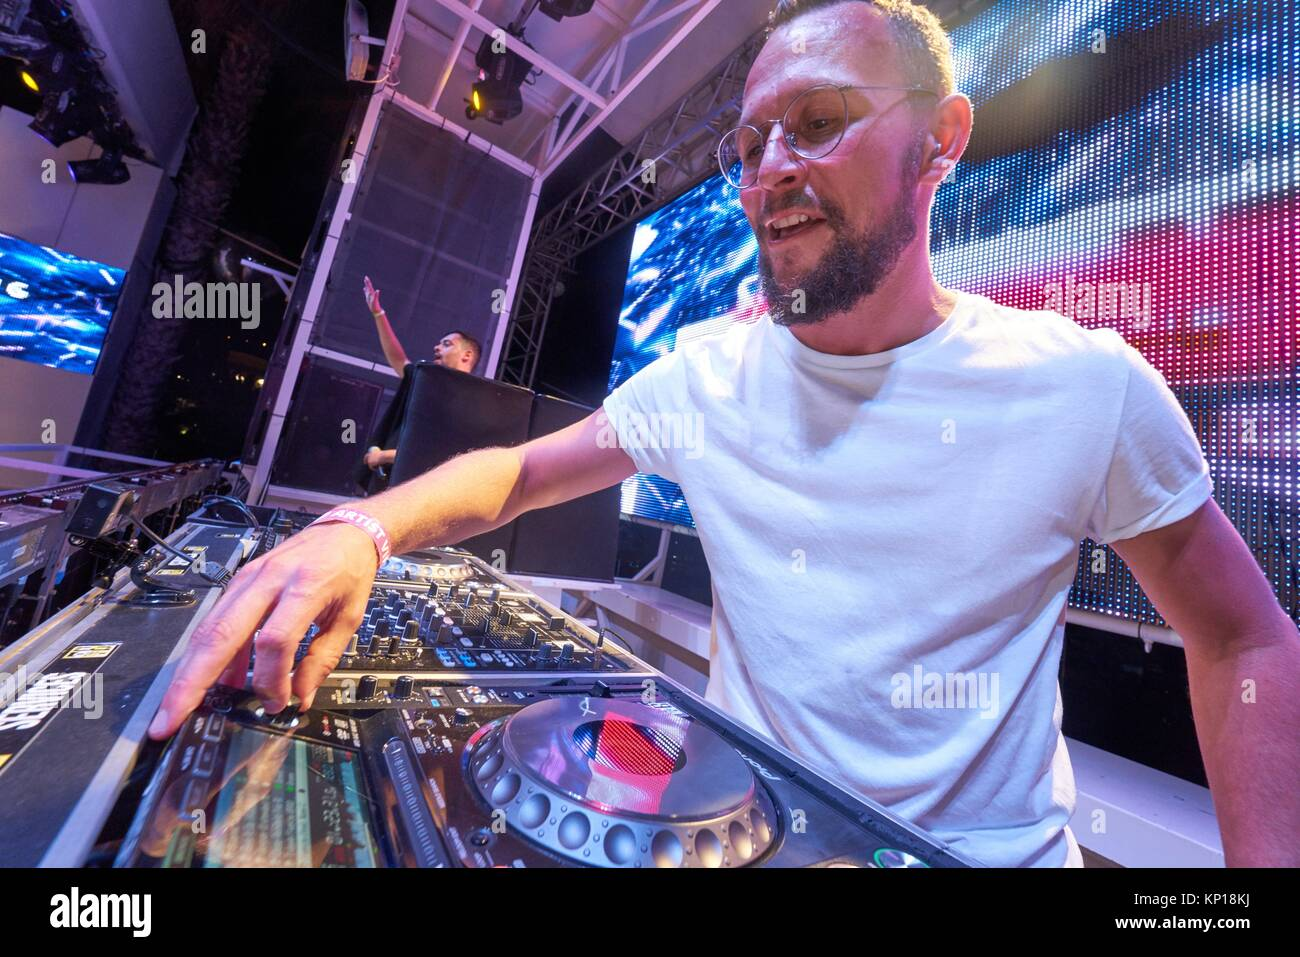 DJ Sebastian Bronk at music festival Starbeach Lovestar Neon in Hersonissos, Crete, Greece, on 23. August 2017 - Stock Image